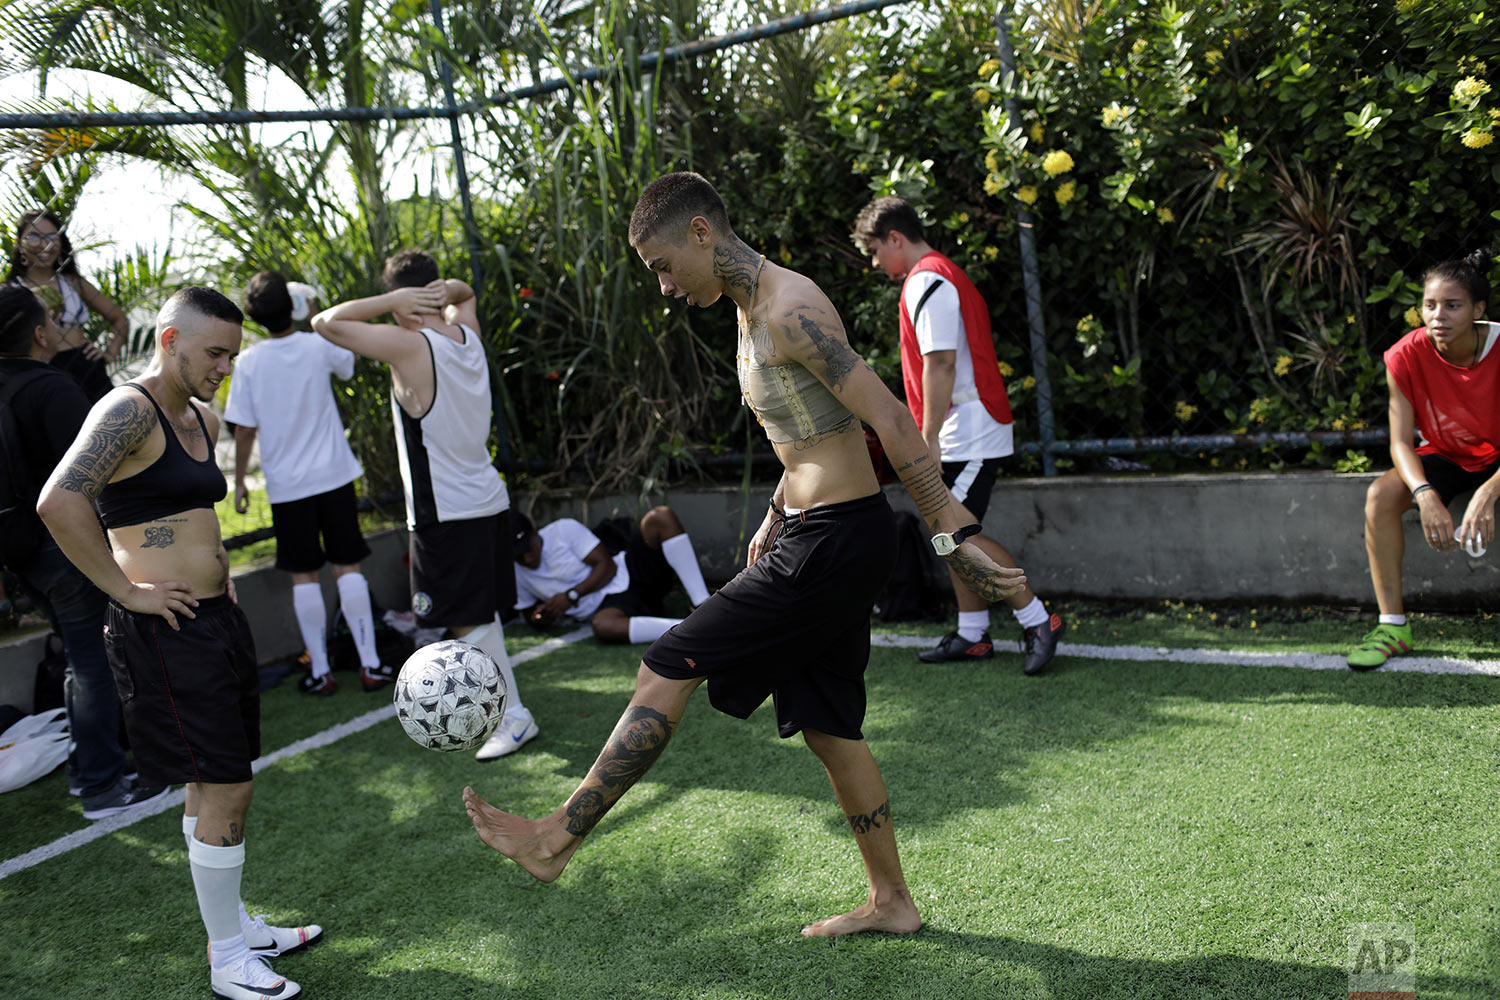 Caua Fraga kicks the ball during a practice session with the Bigtboys transgender men's soccer team in Rio de Janeiro, Brazil, May 13, 2019. The rise of Brazilian President Jair Bolsonaro and a socially conservative wave has alarmed the LGBT community, including the Bigtboys. (AP Photo/Silvia Izquierdo)